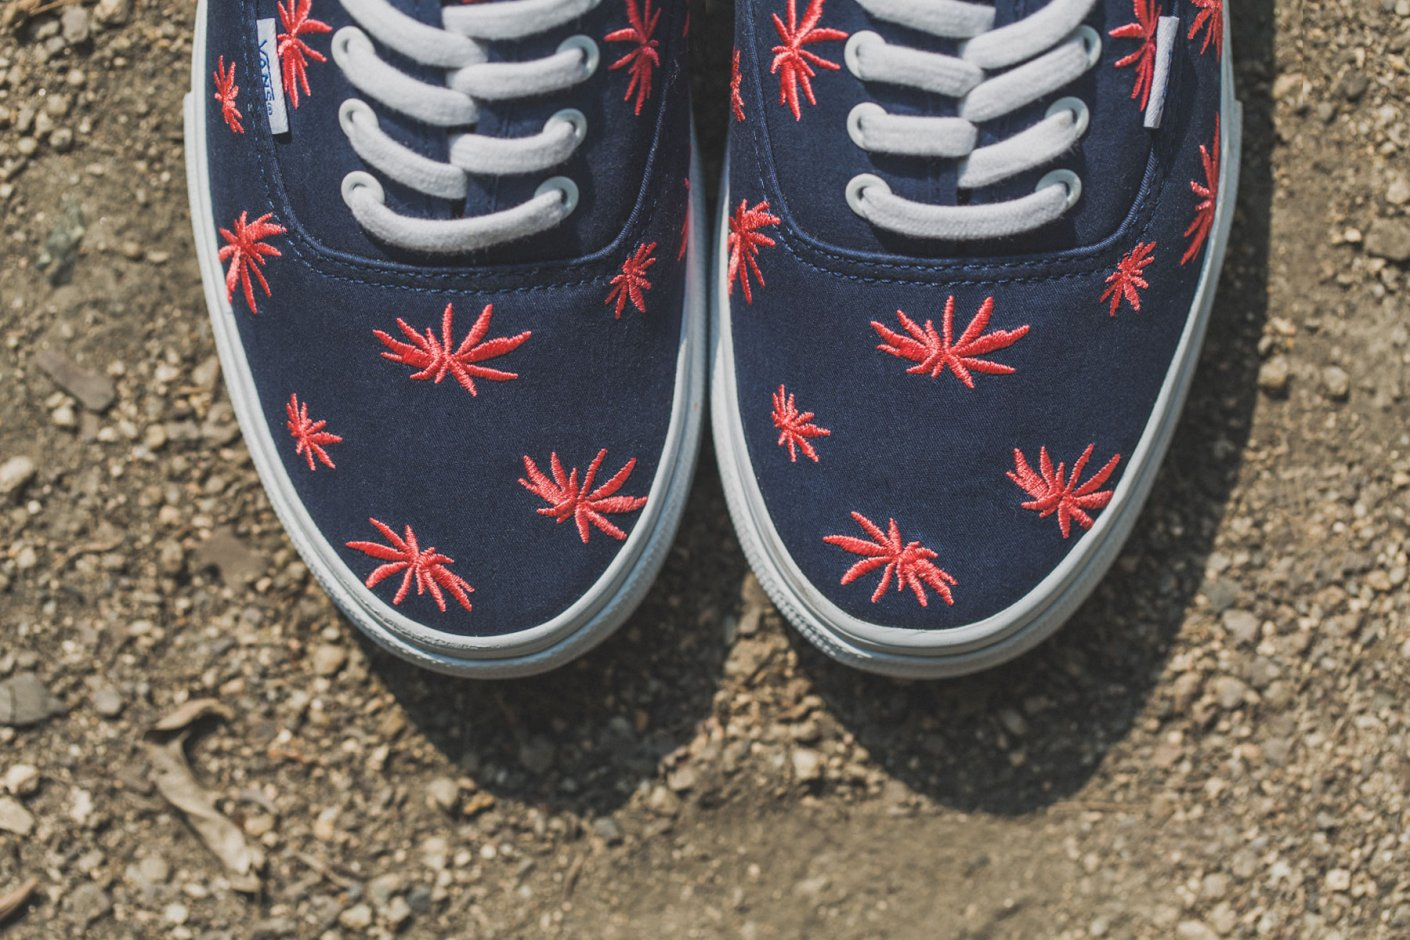 vans-palm-embroidery-2